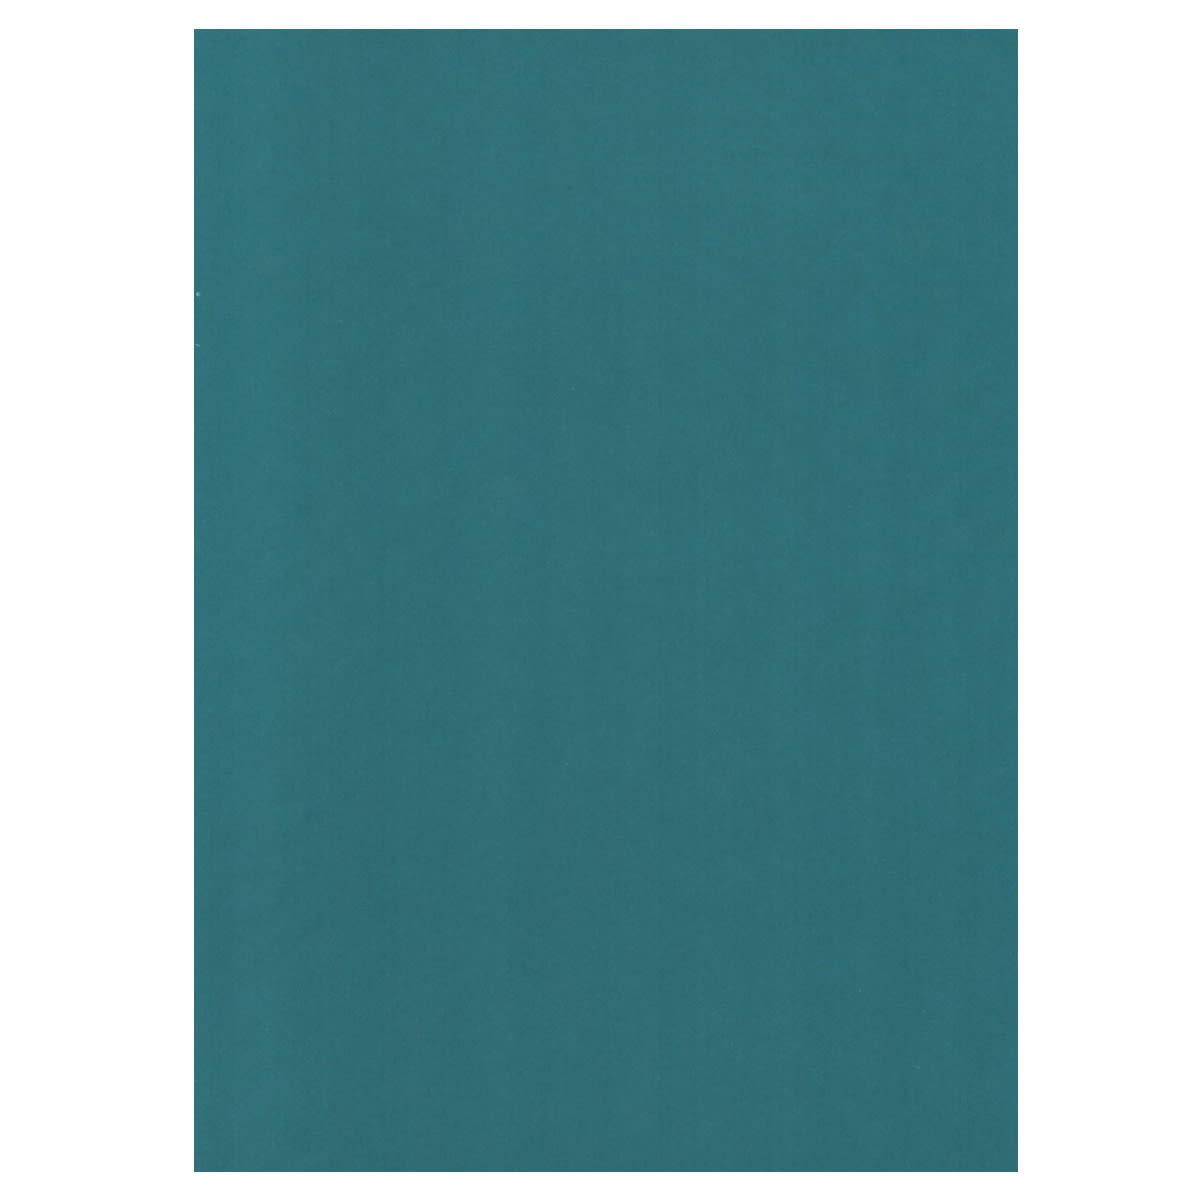 A4 TEAL SINGLE SIDED WASH CARD 300 GSM